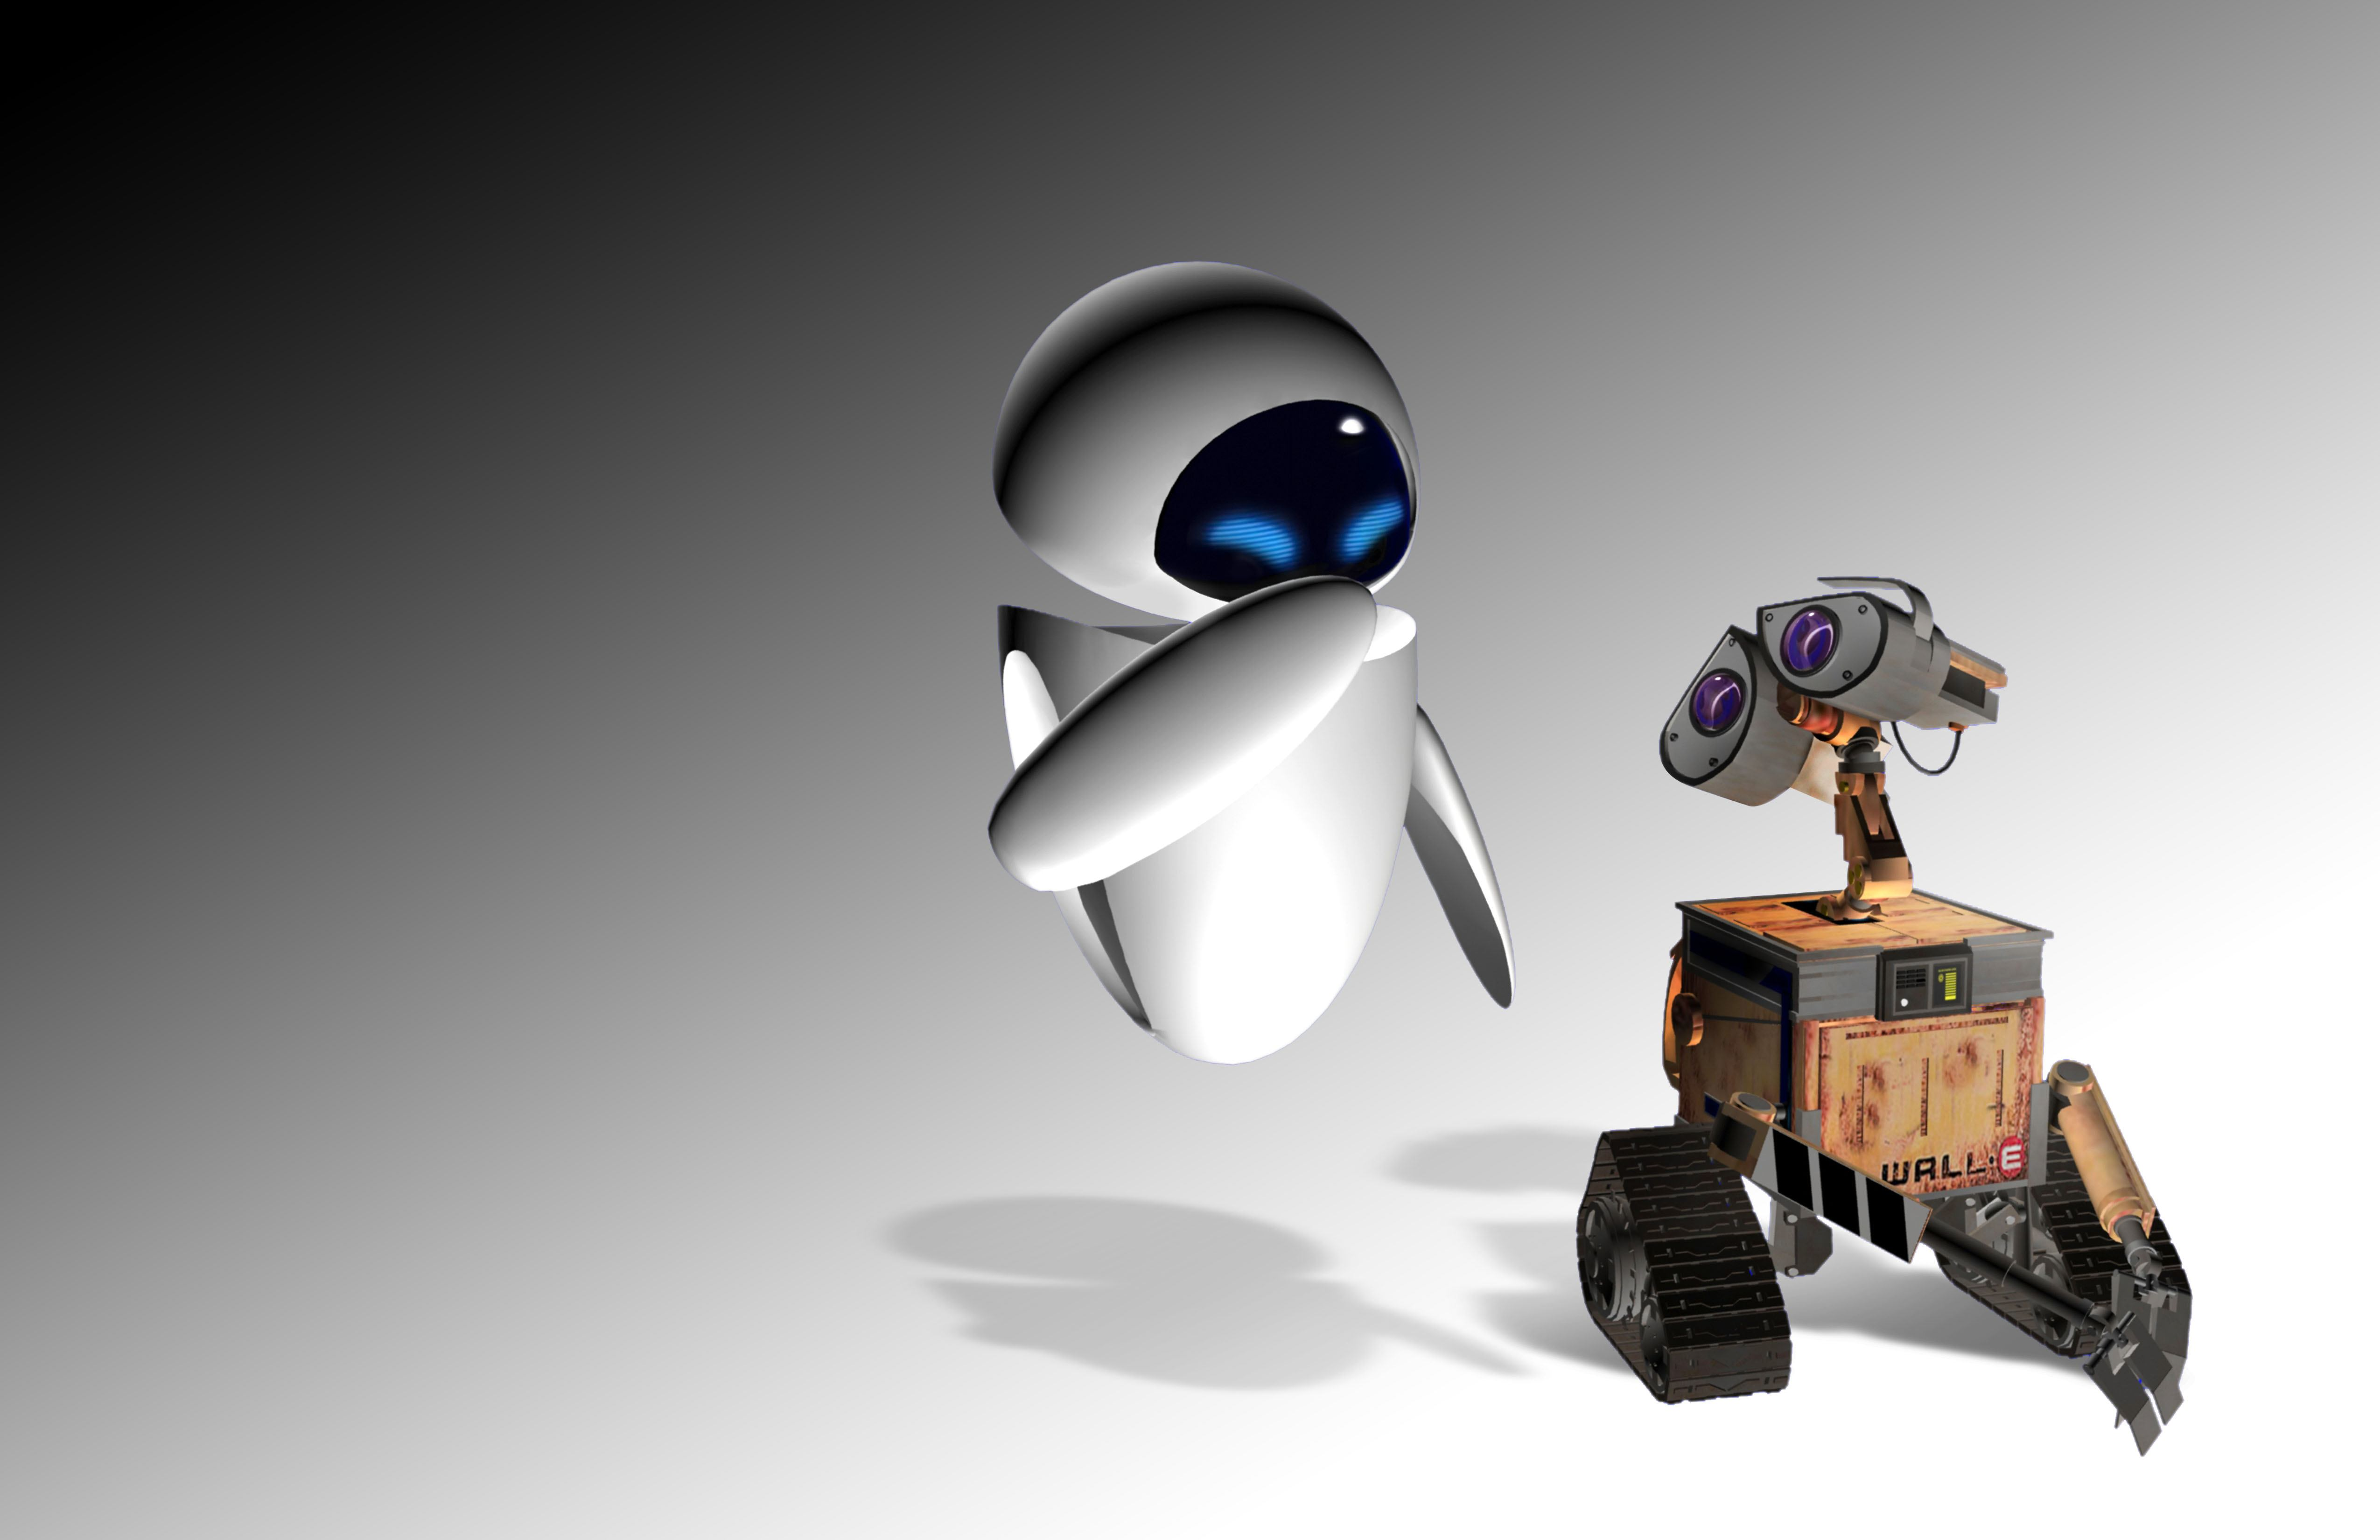 wall e scares us into change The un published what's essentially an obituary for the earth last week, so much so that we wrote 2,000 words on why you should care about, well, how climate genocide is coming (and fast) snl is also flummoxed why the default response from people seems to only be [shruggie.